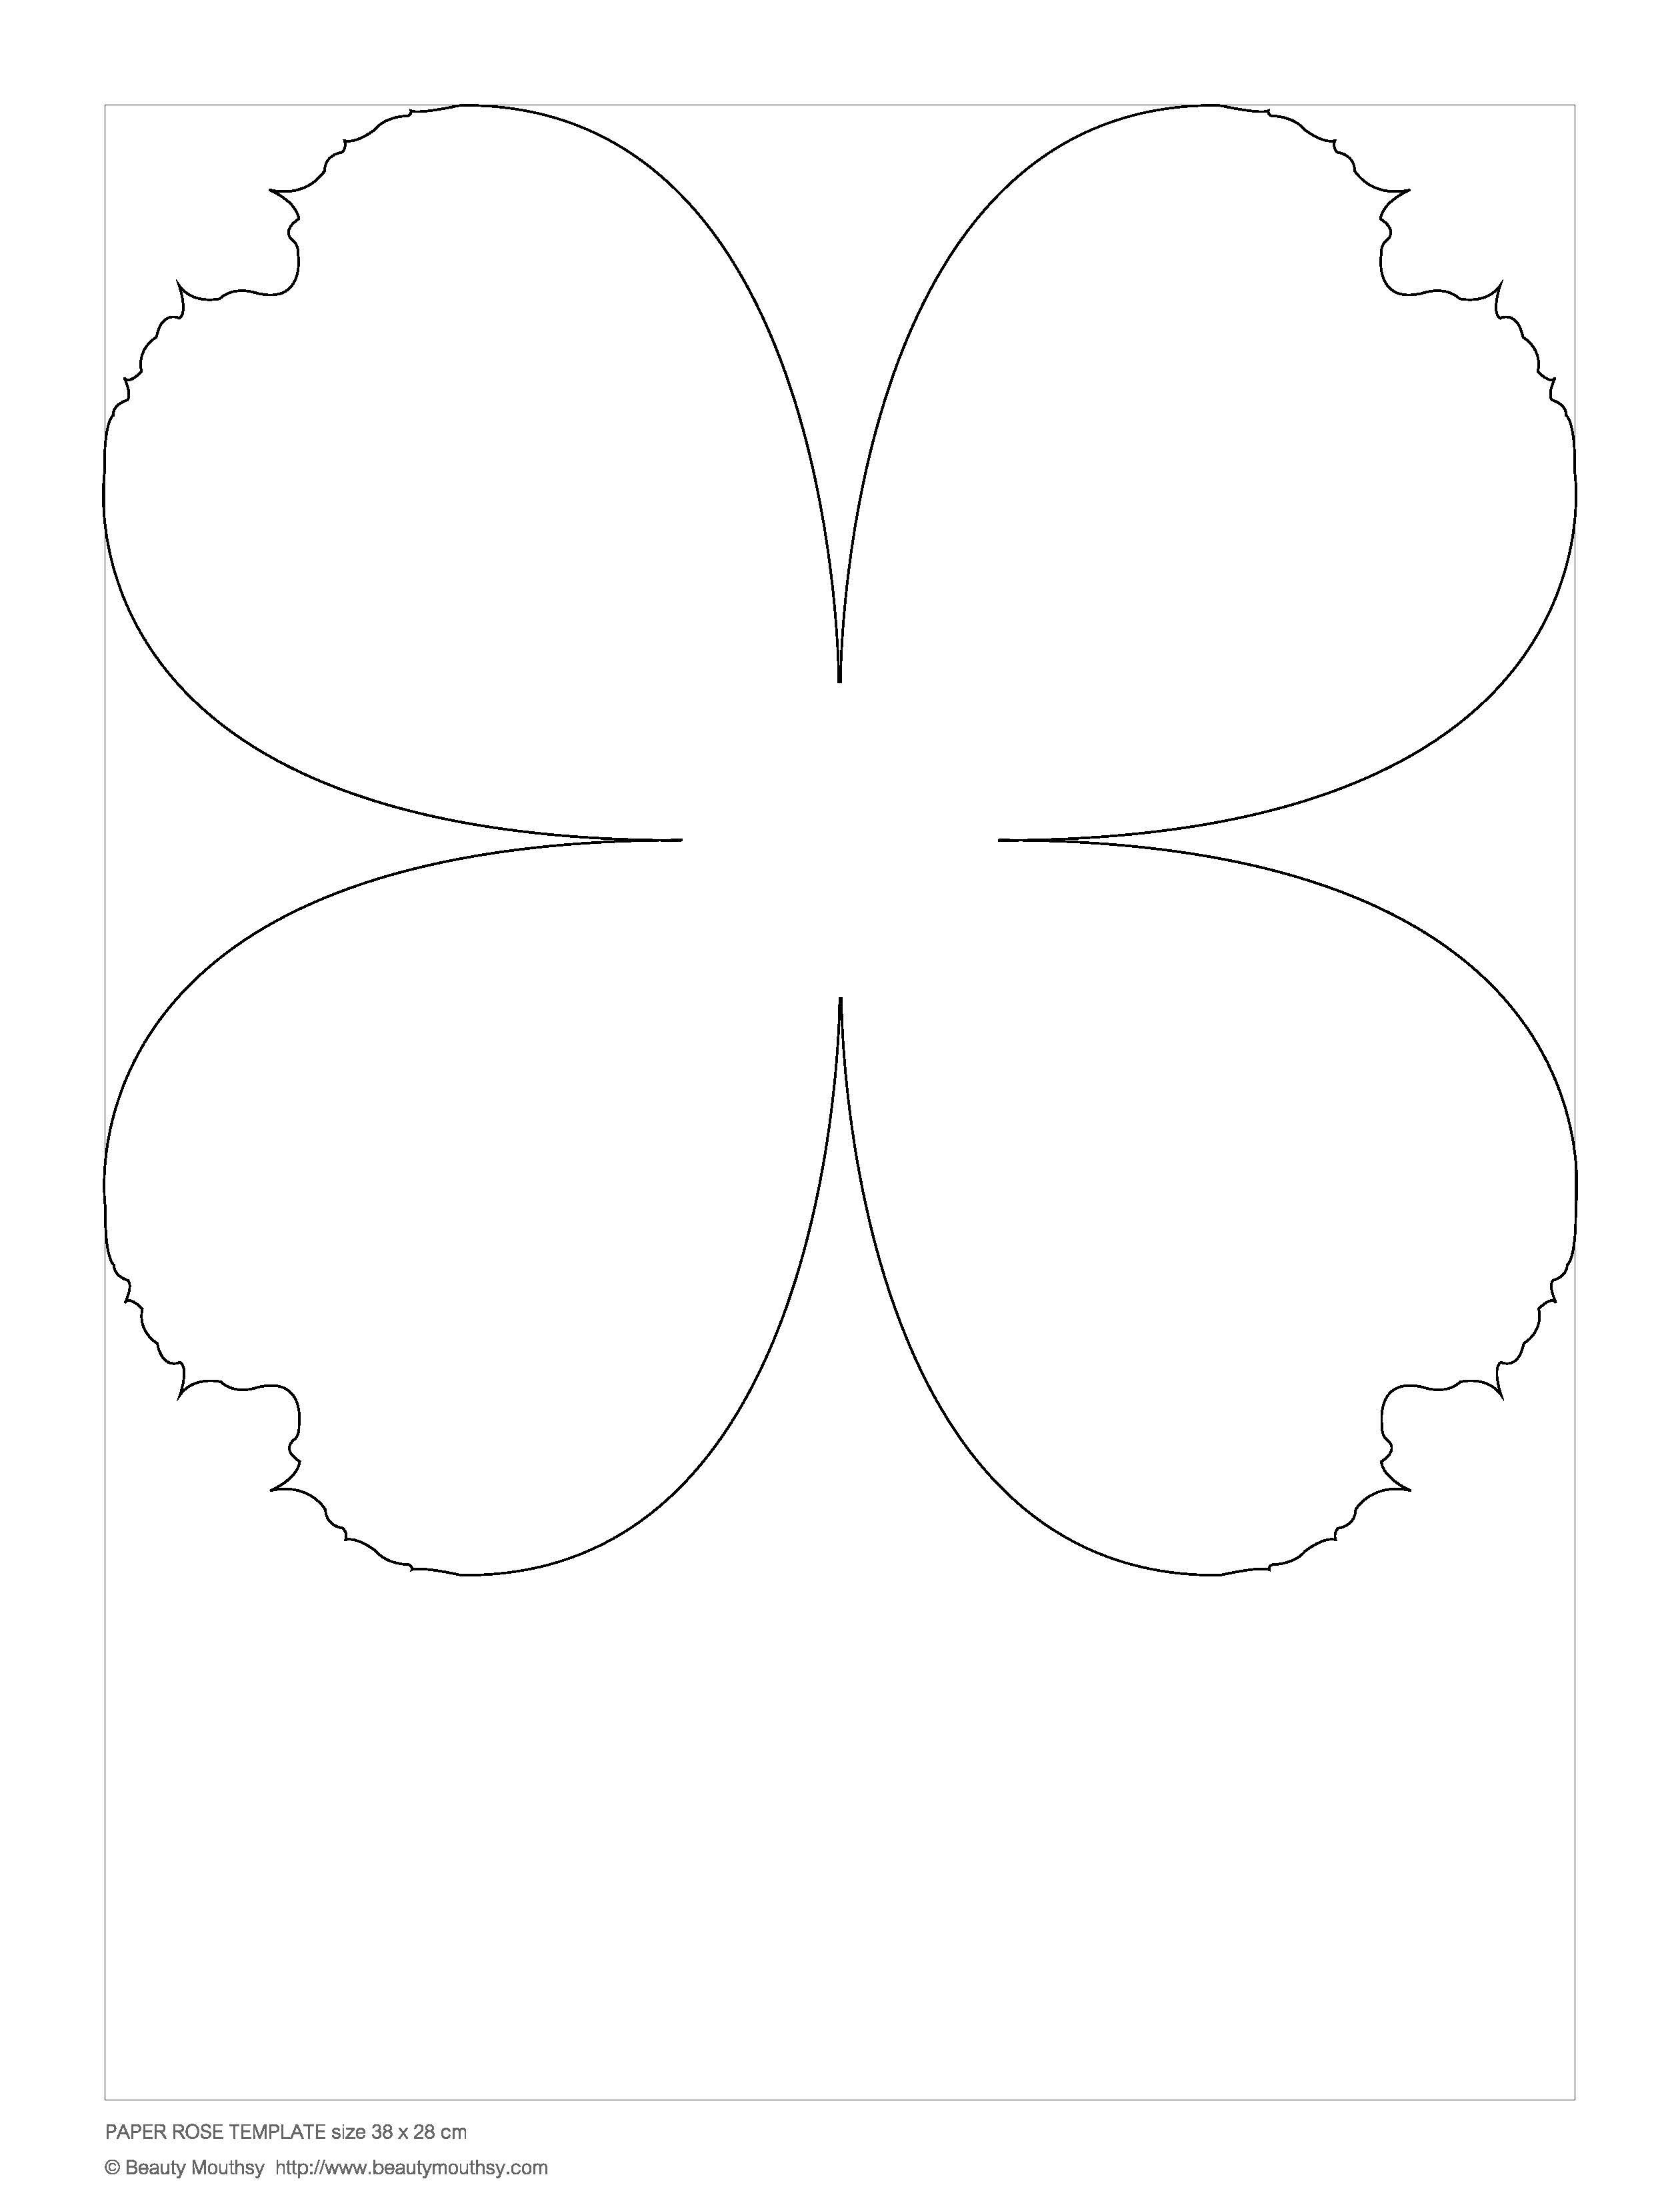 paper rose template (small) | Flowers - Giant Paper | Pinterest ...